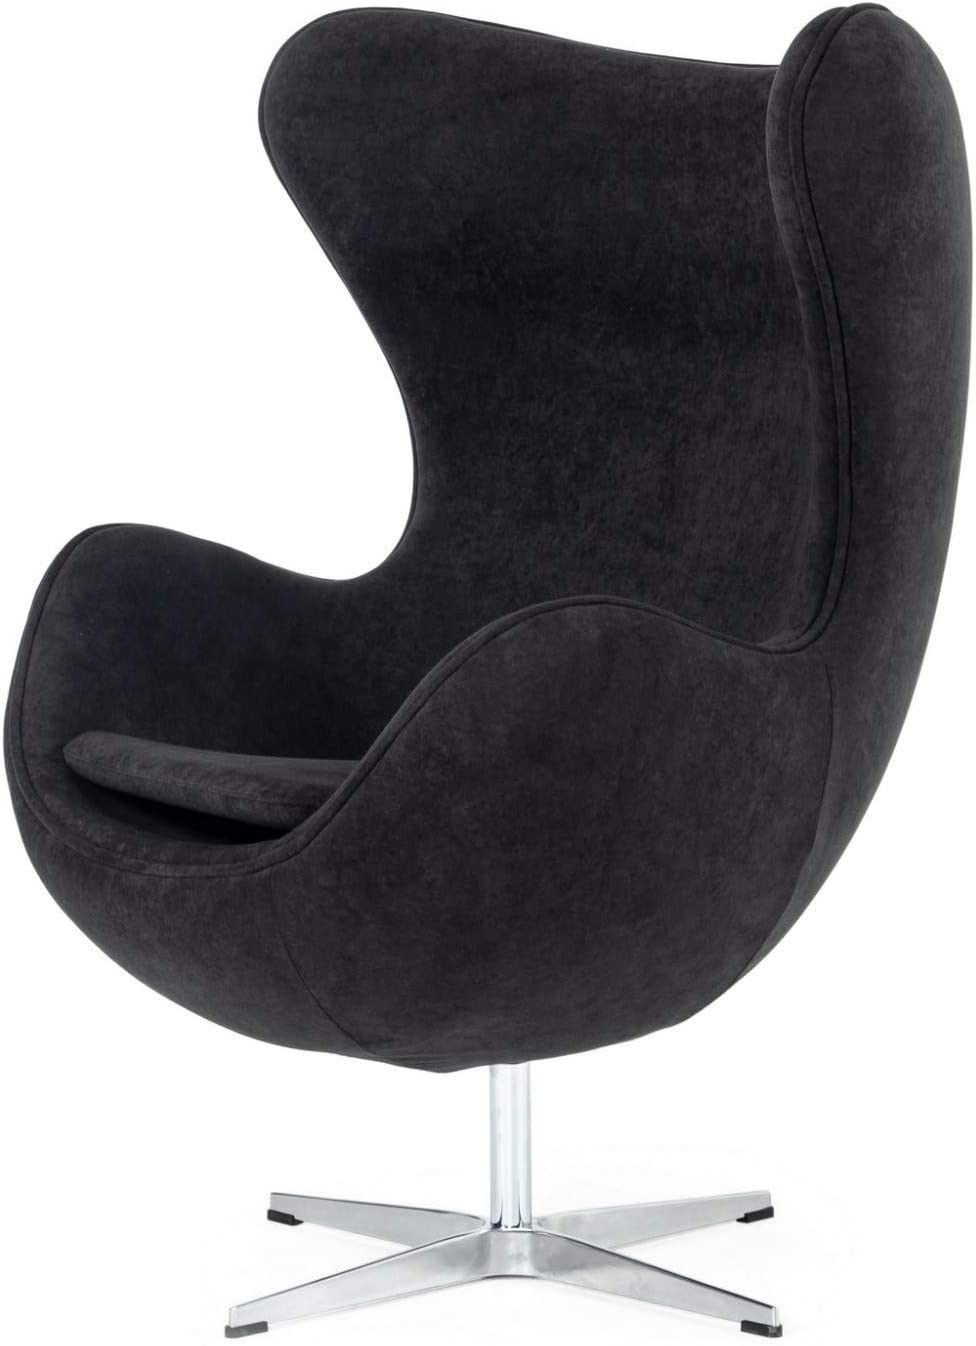 Limari Home Simeon Collection Modern Style Fabric Upholstered Accent Chair with Piped Seams and Swivel Base, Black